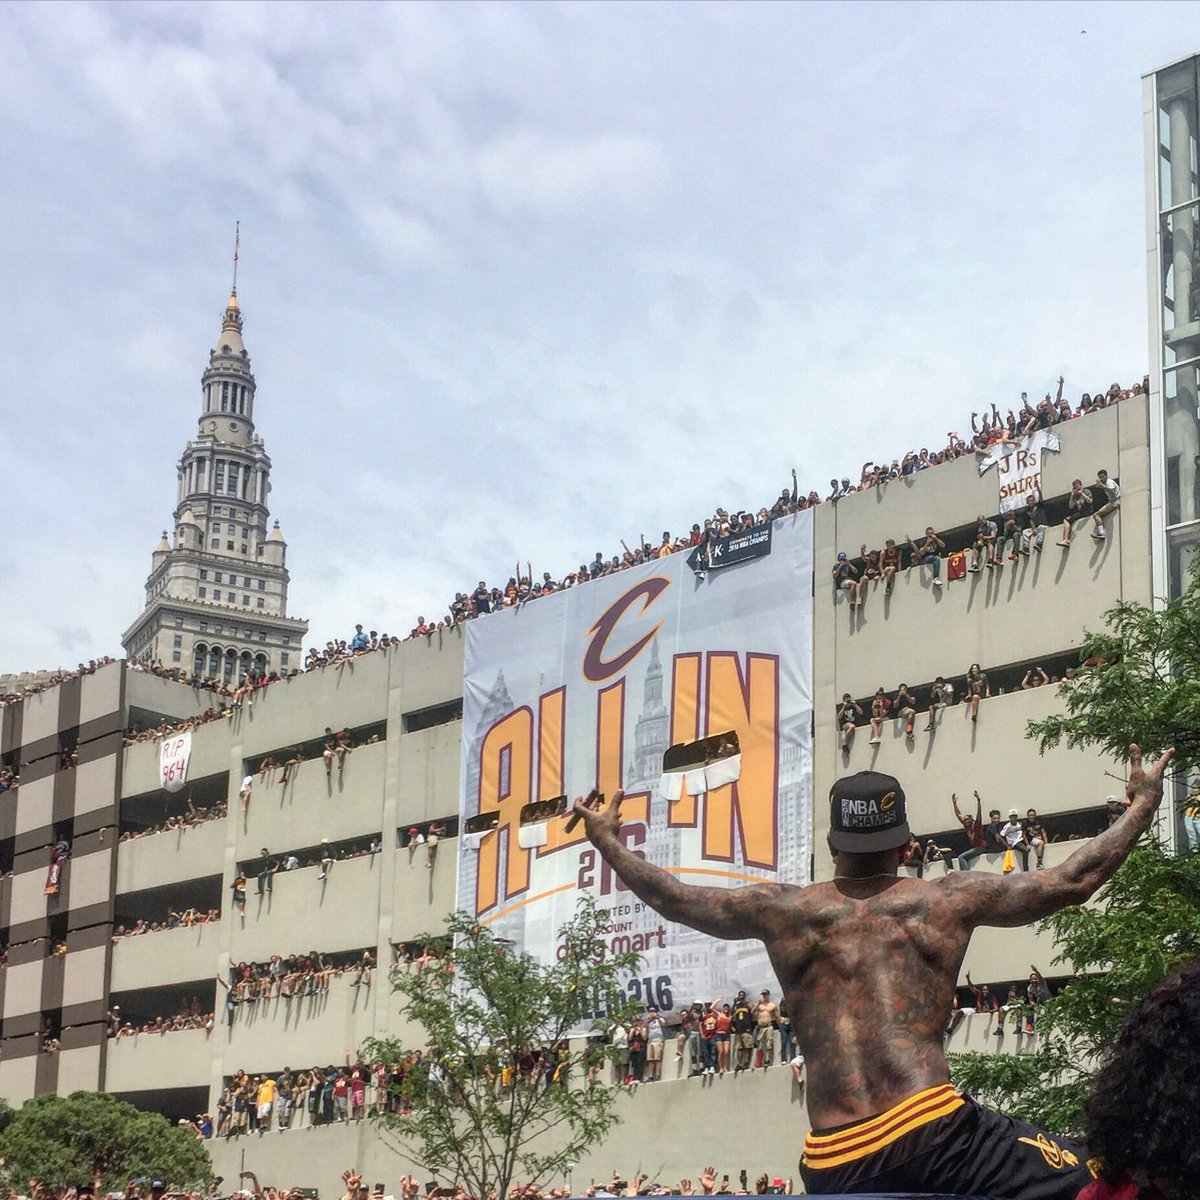 Everyone's posting the LeBron with the Nike banner pic...but this was my favorite of the day. JR & his shirt. https://t.co/f24Y3IR12I